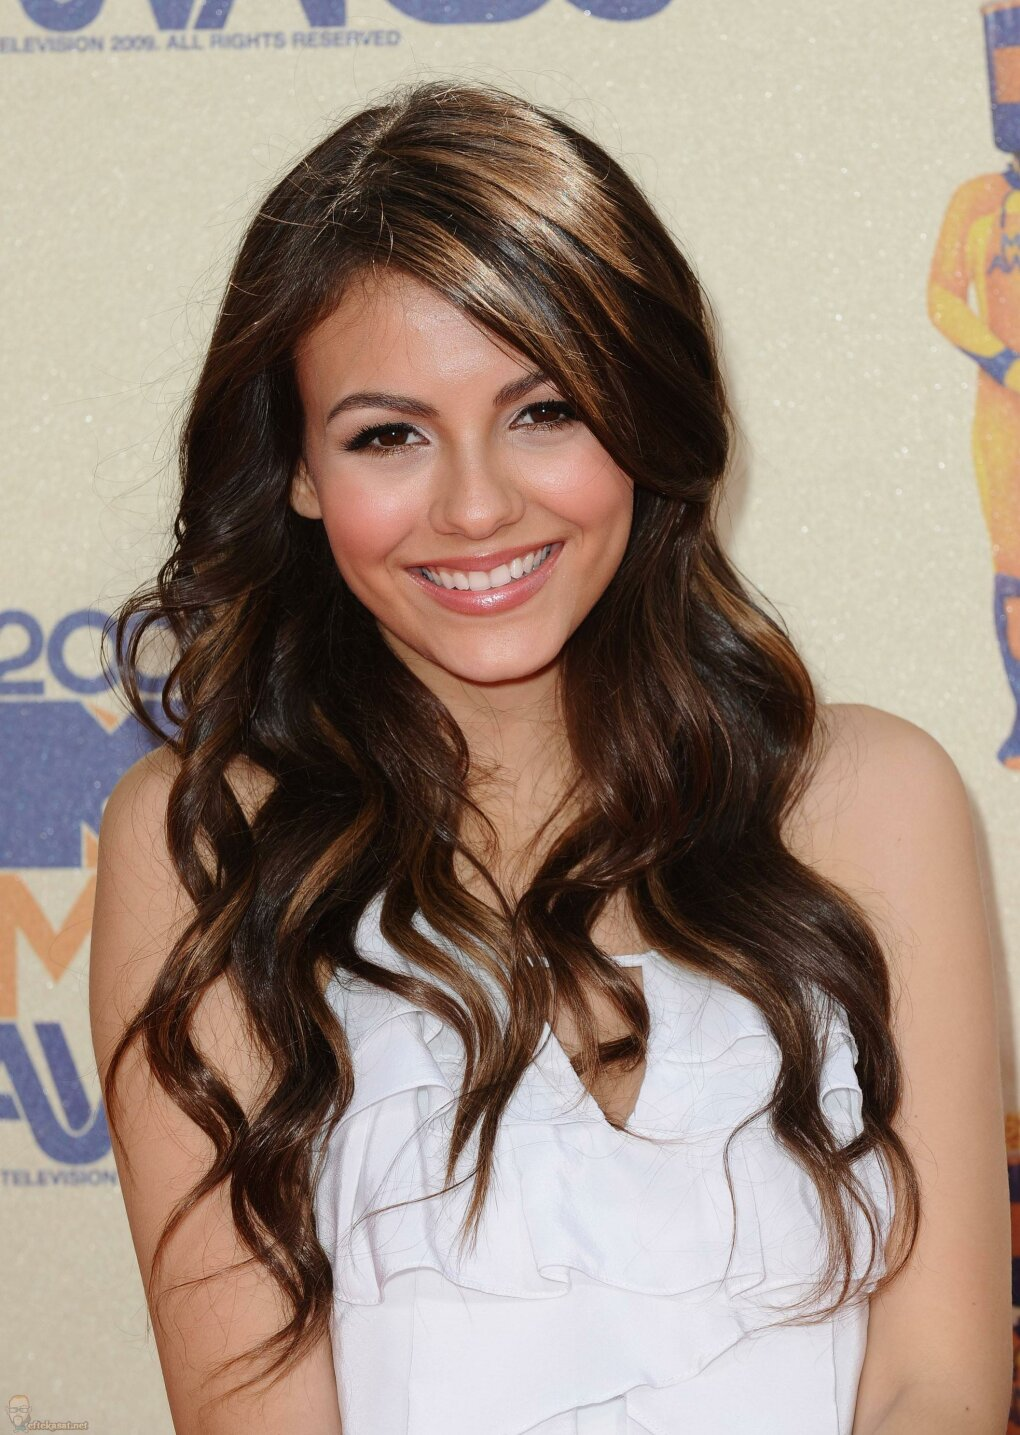 78t1o - charming victoria justice (140+ photos)